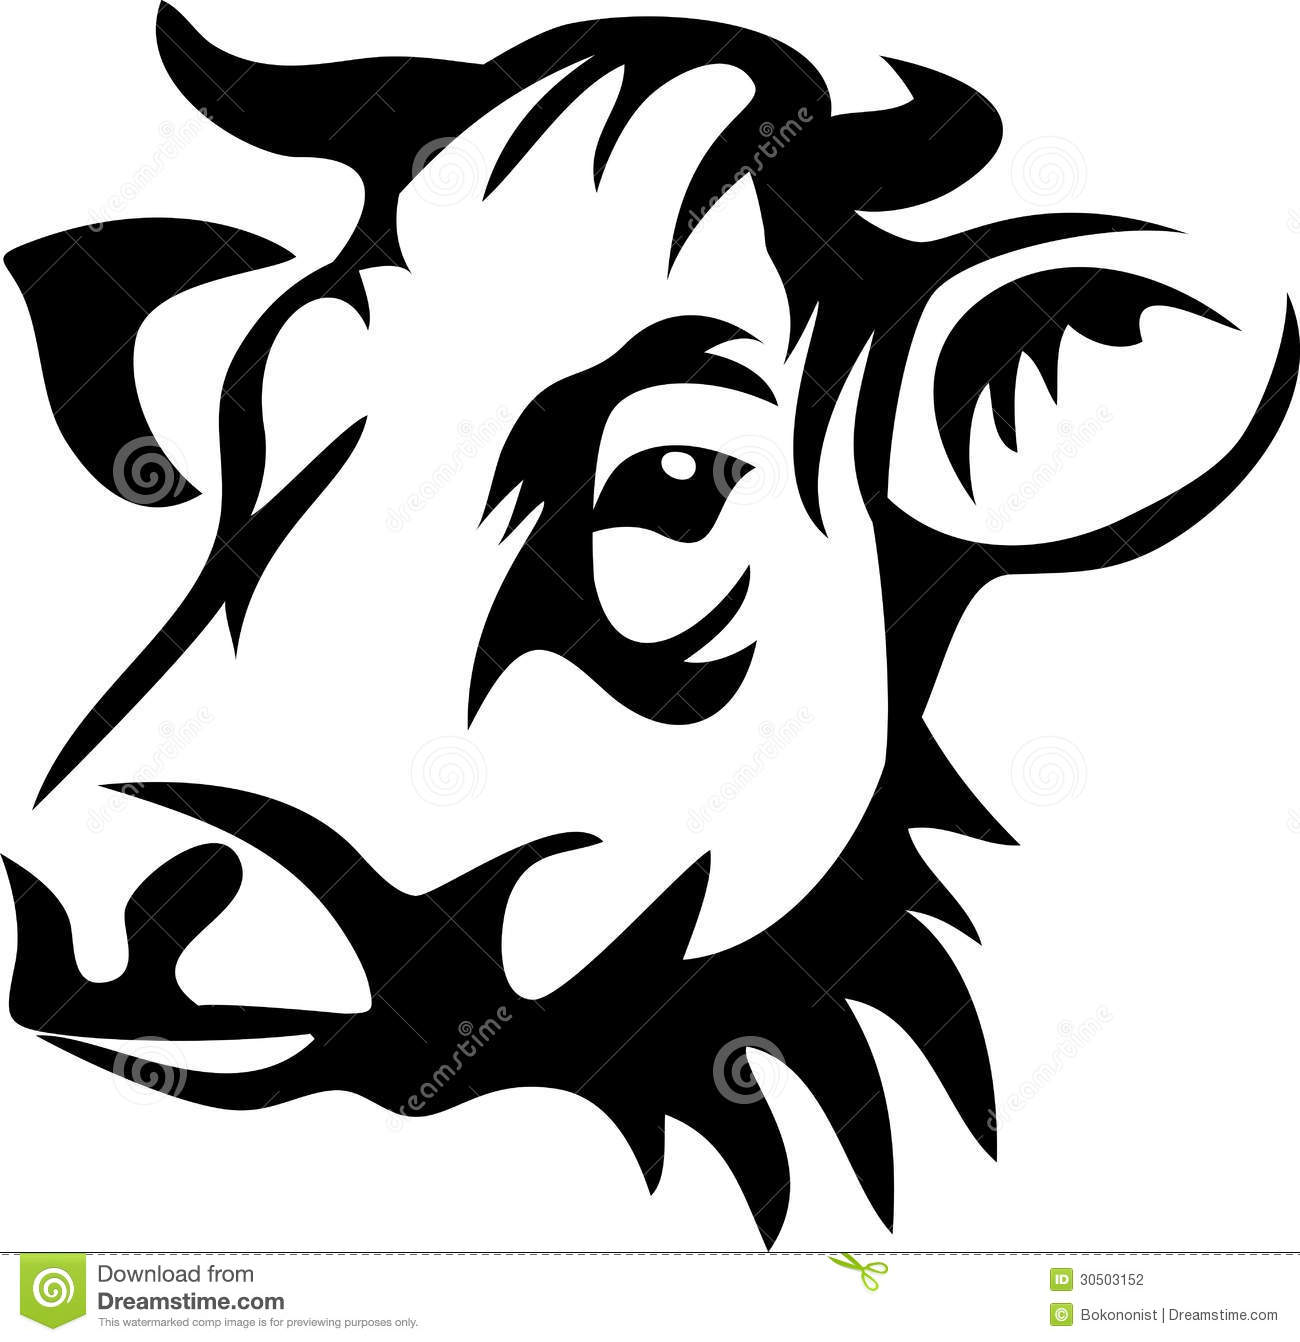 Cow stock vector. Illustration of farming, rural ...